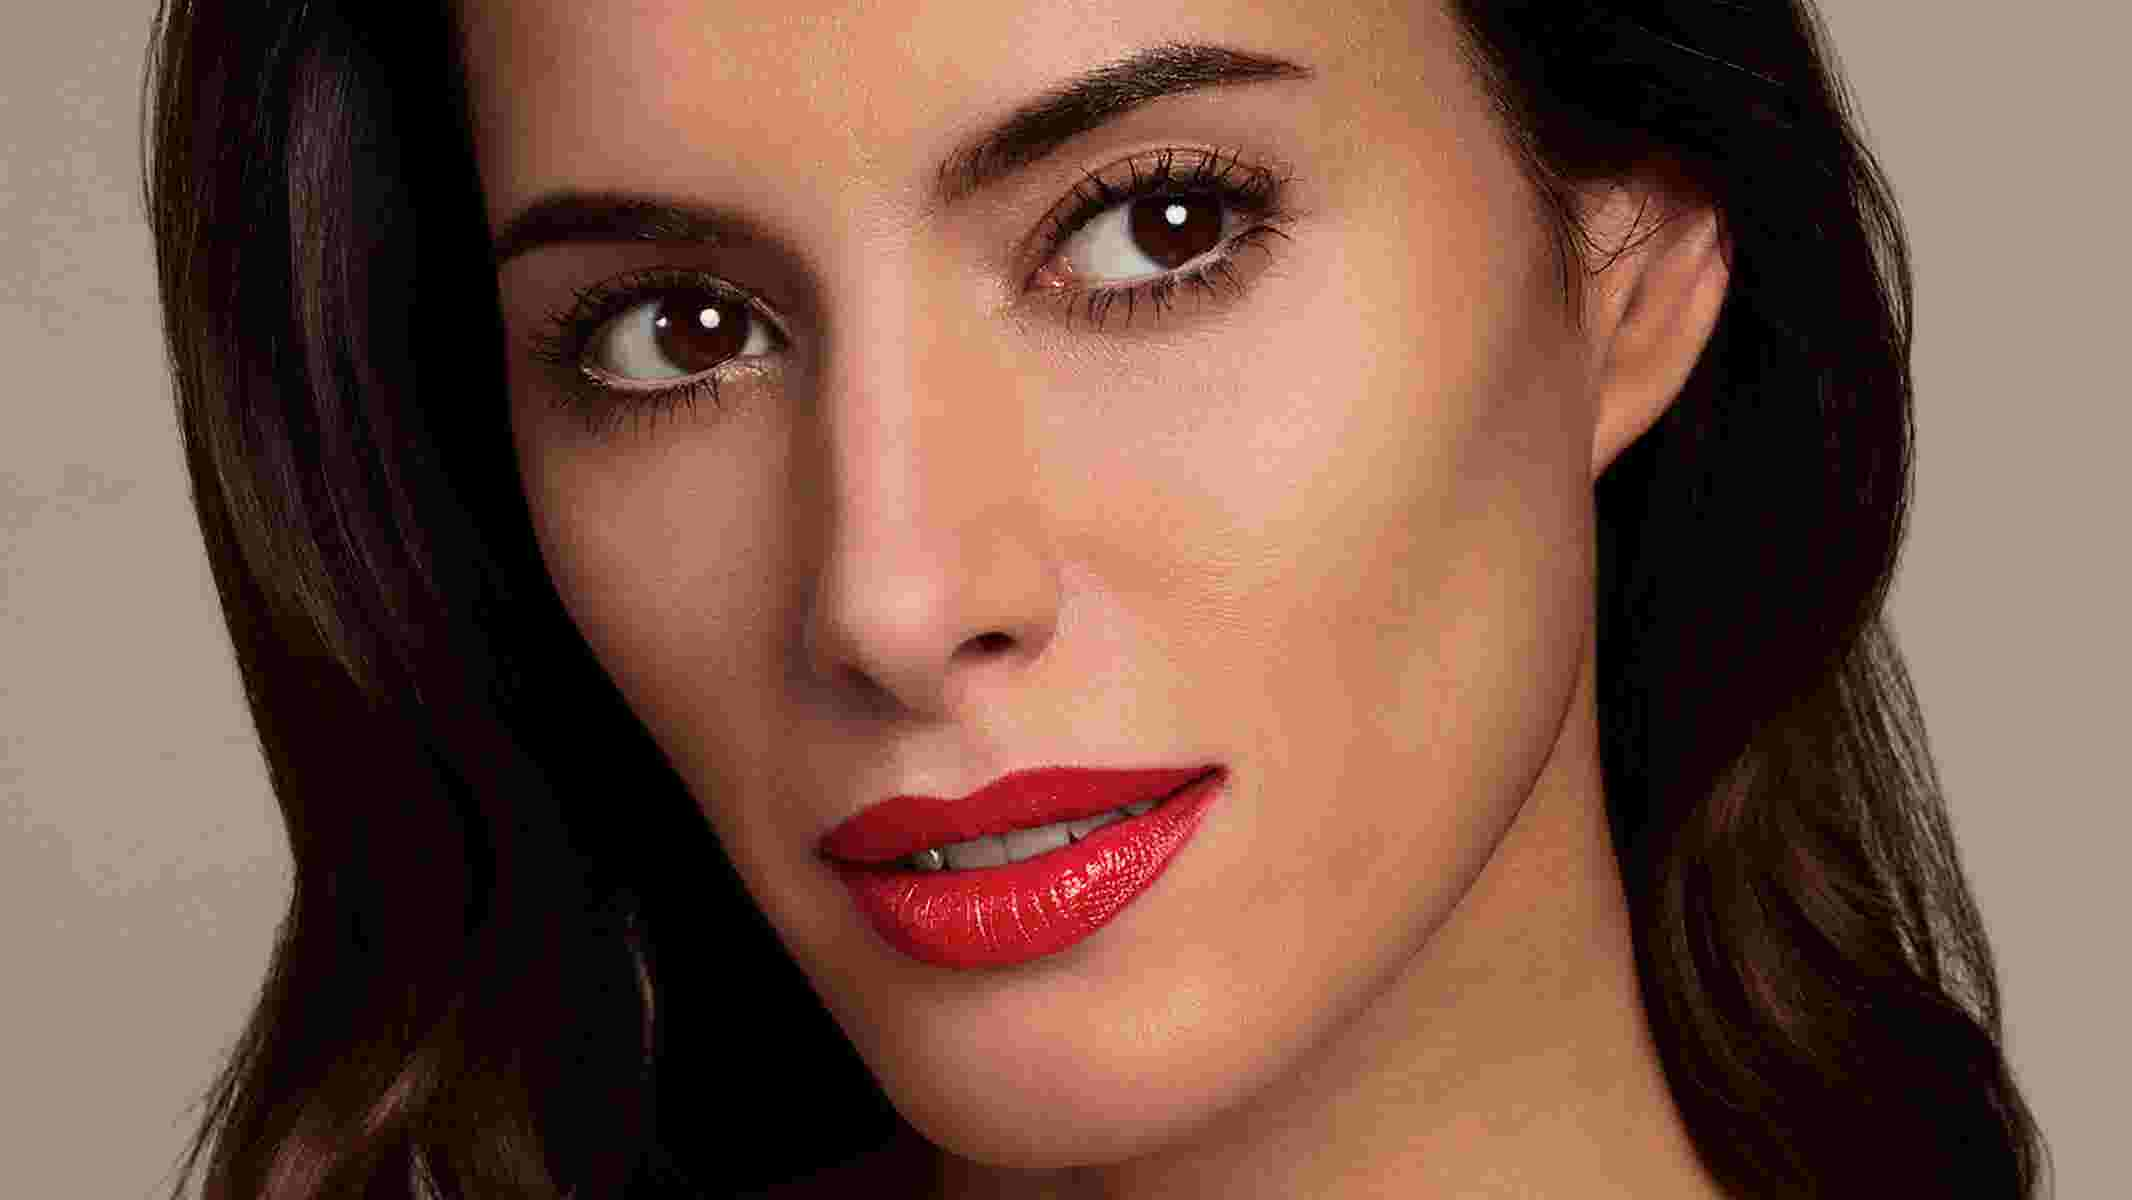 Photo of model wearing red long-lasting lipstick by Max Factor